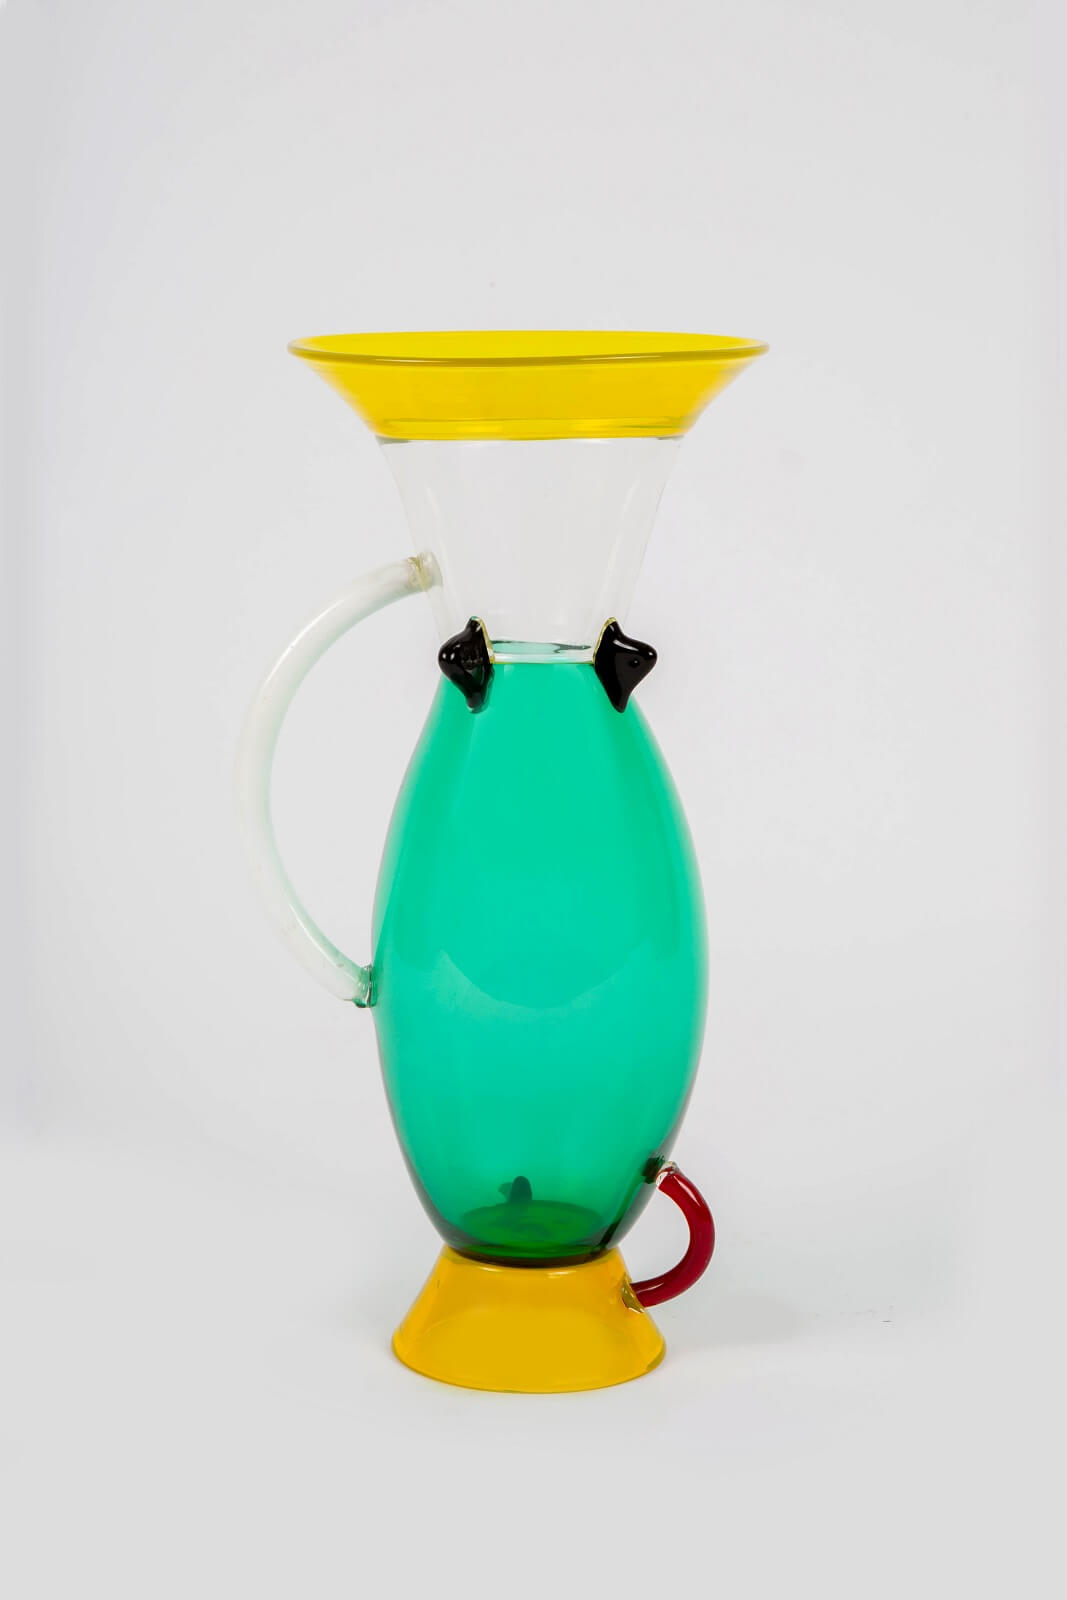 Vase Altair by Ettore Sottsass for sale